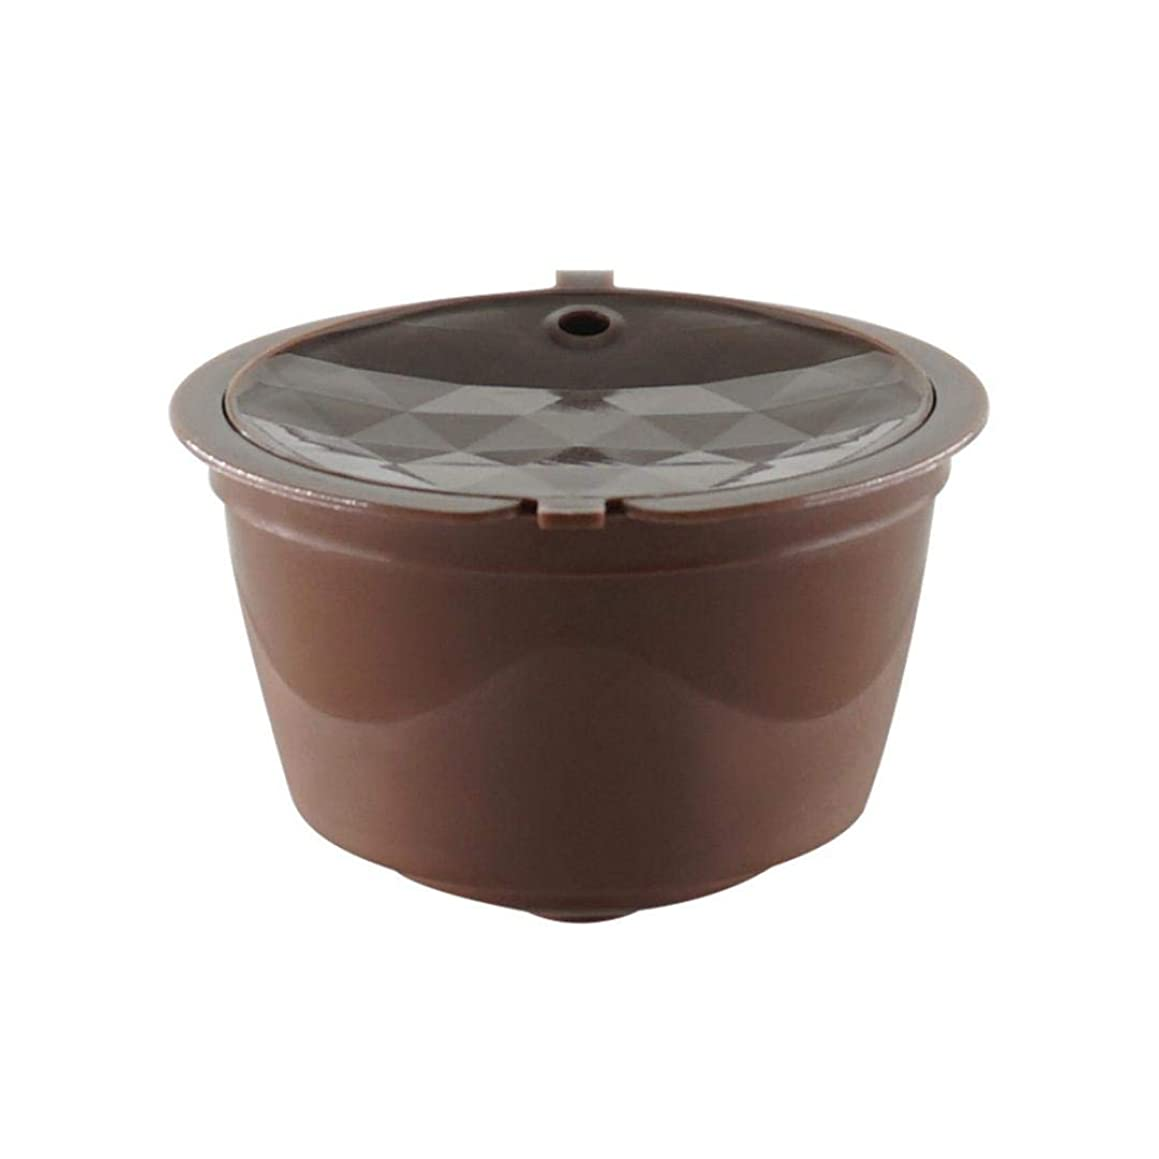 Elaco Coffee Filter, 1PC Refillable Coffee Capsule Cup Reusable Filter for Dolce Gusto Nescafe